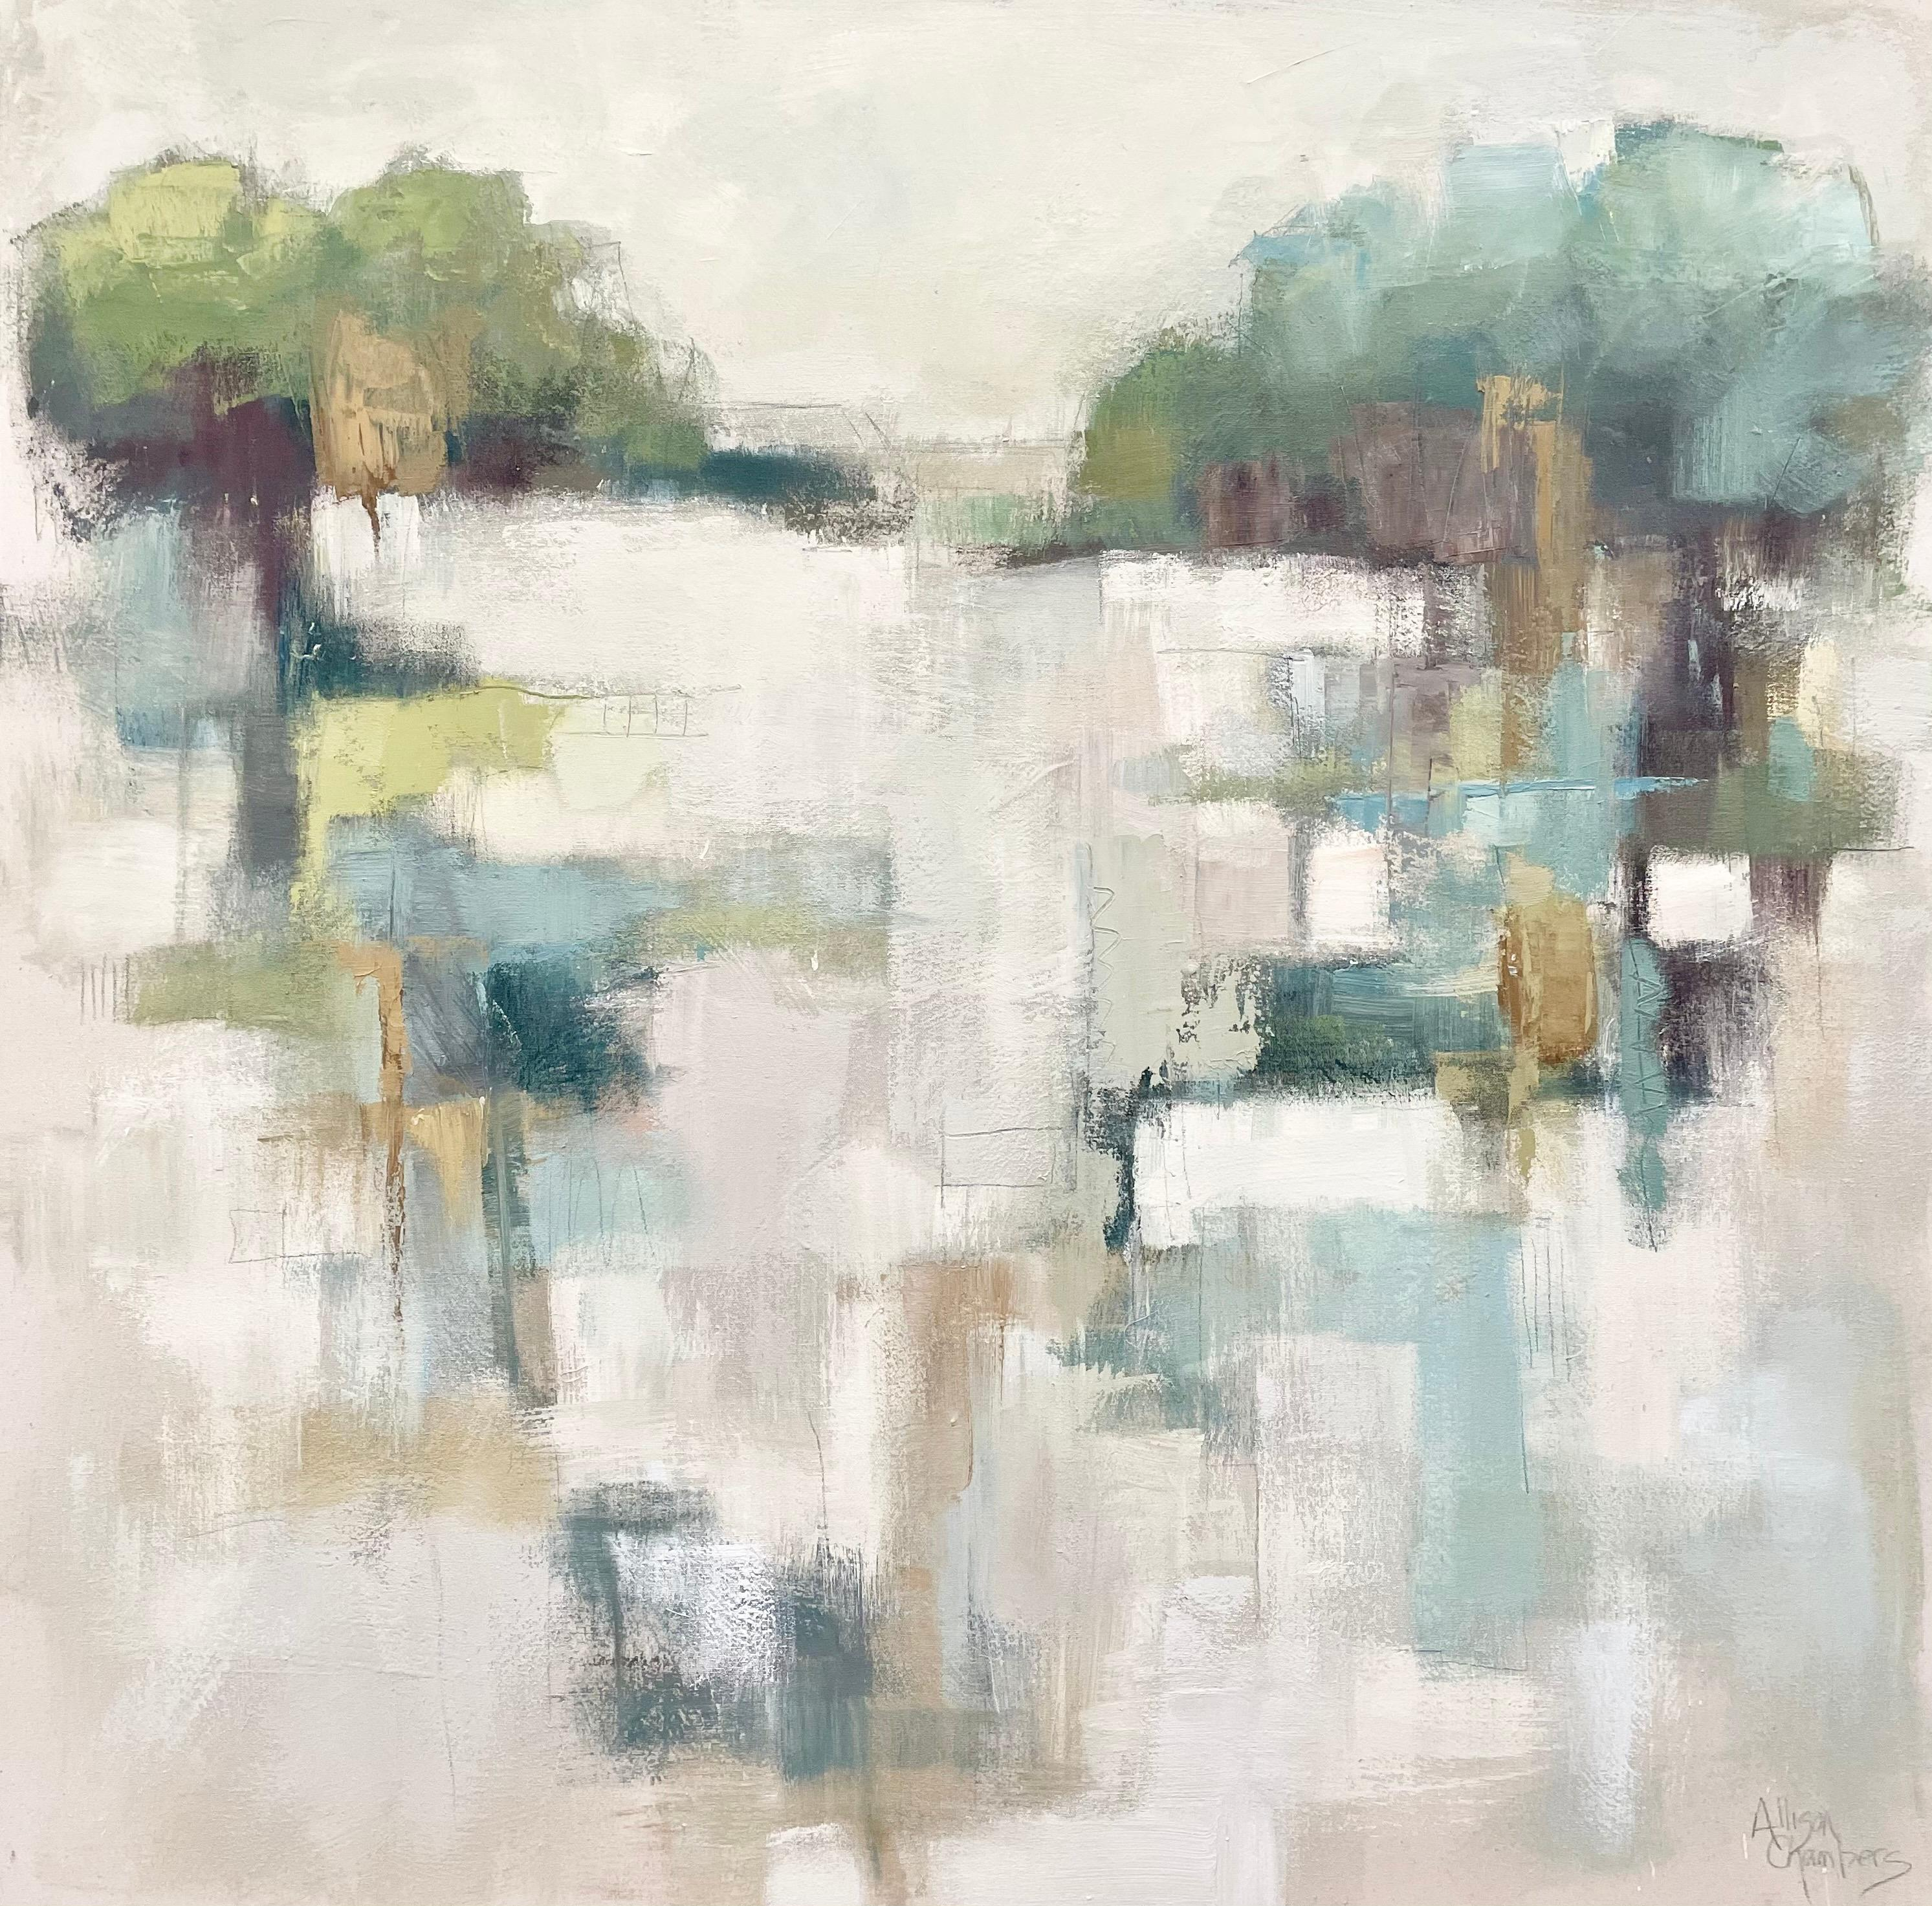 Well Kept Secret by Allison Chambers, Large Framed Impressionist Painting